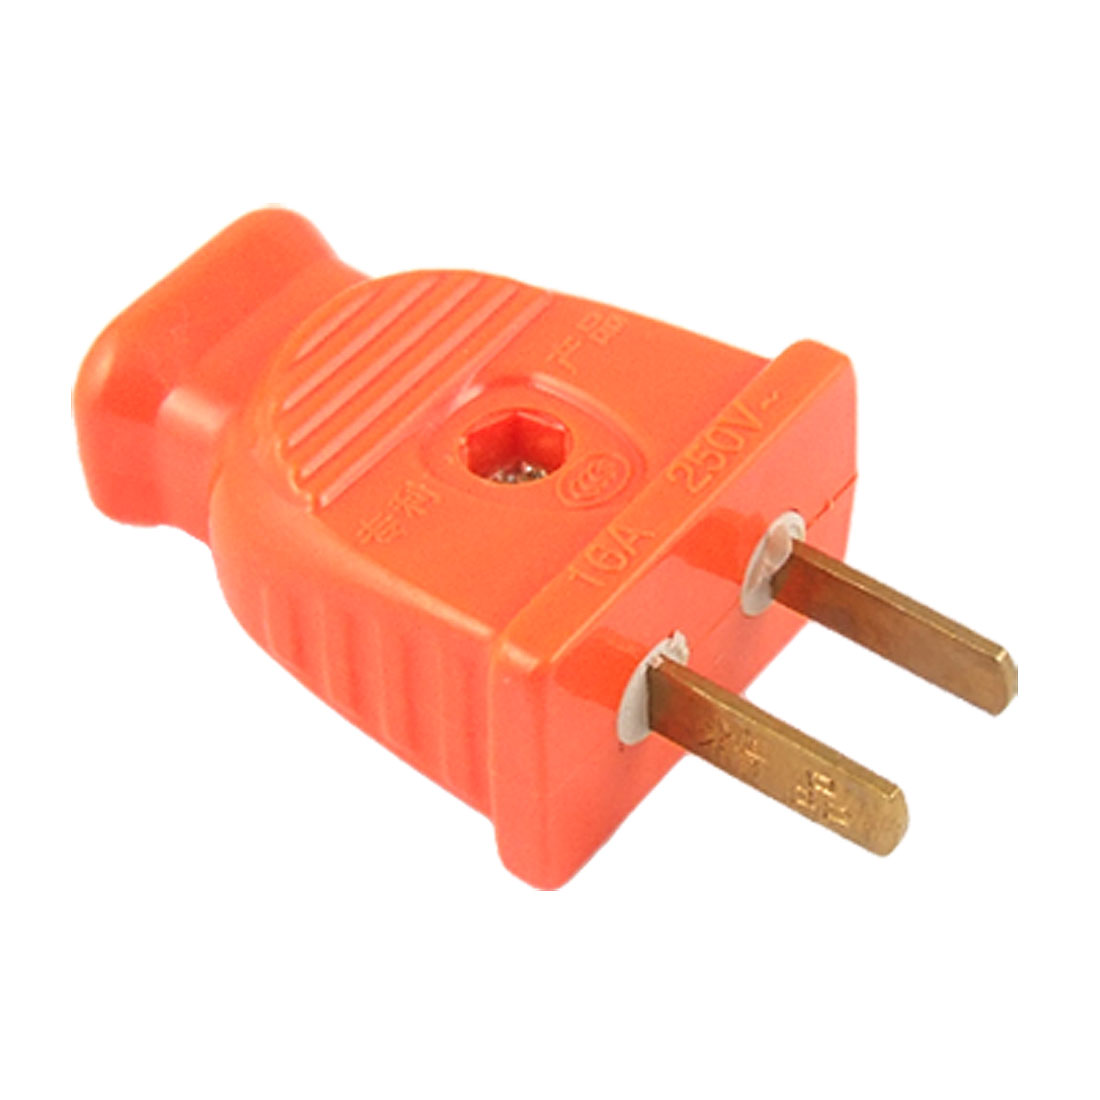 US AU 2 Pin Plug 16A 250VAC DIY Cable Connector Orange Red